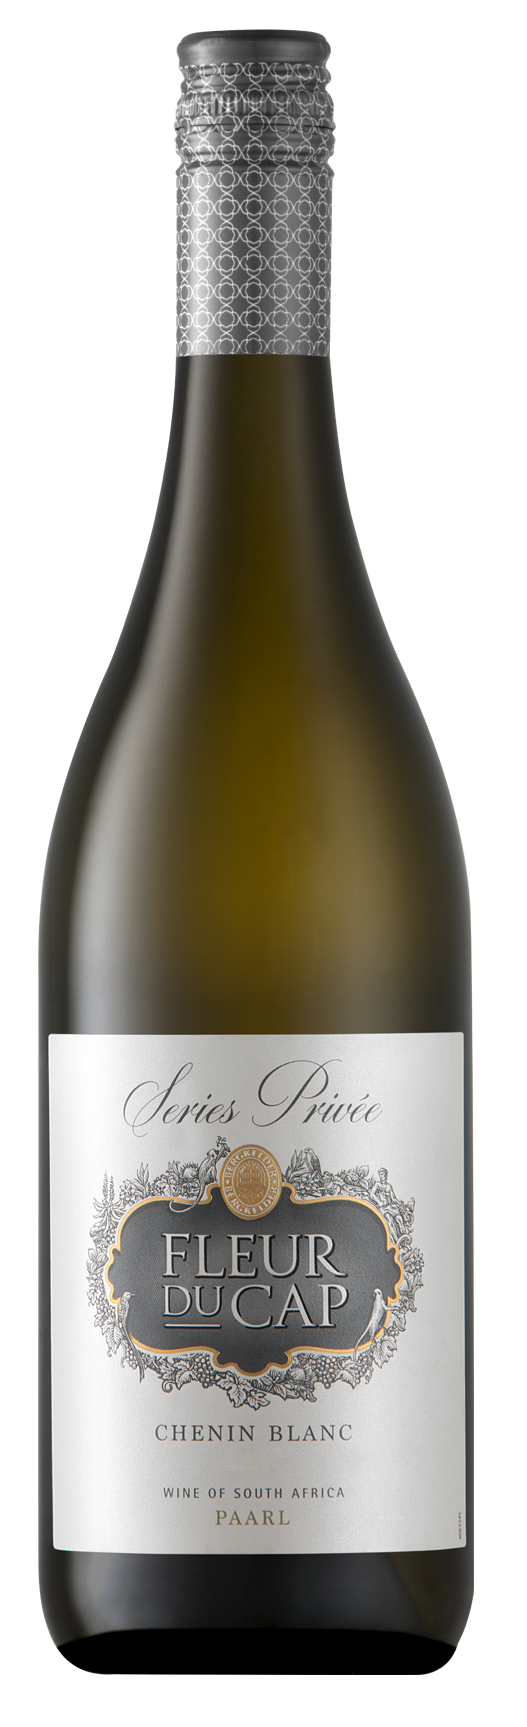 The Series Privée range Series Privée Chenin Blanc